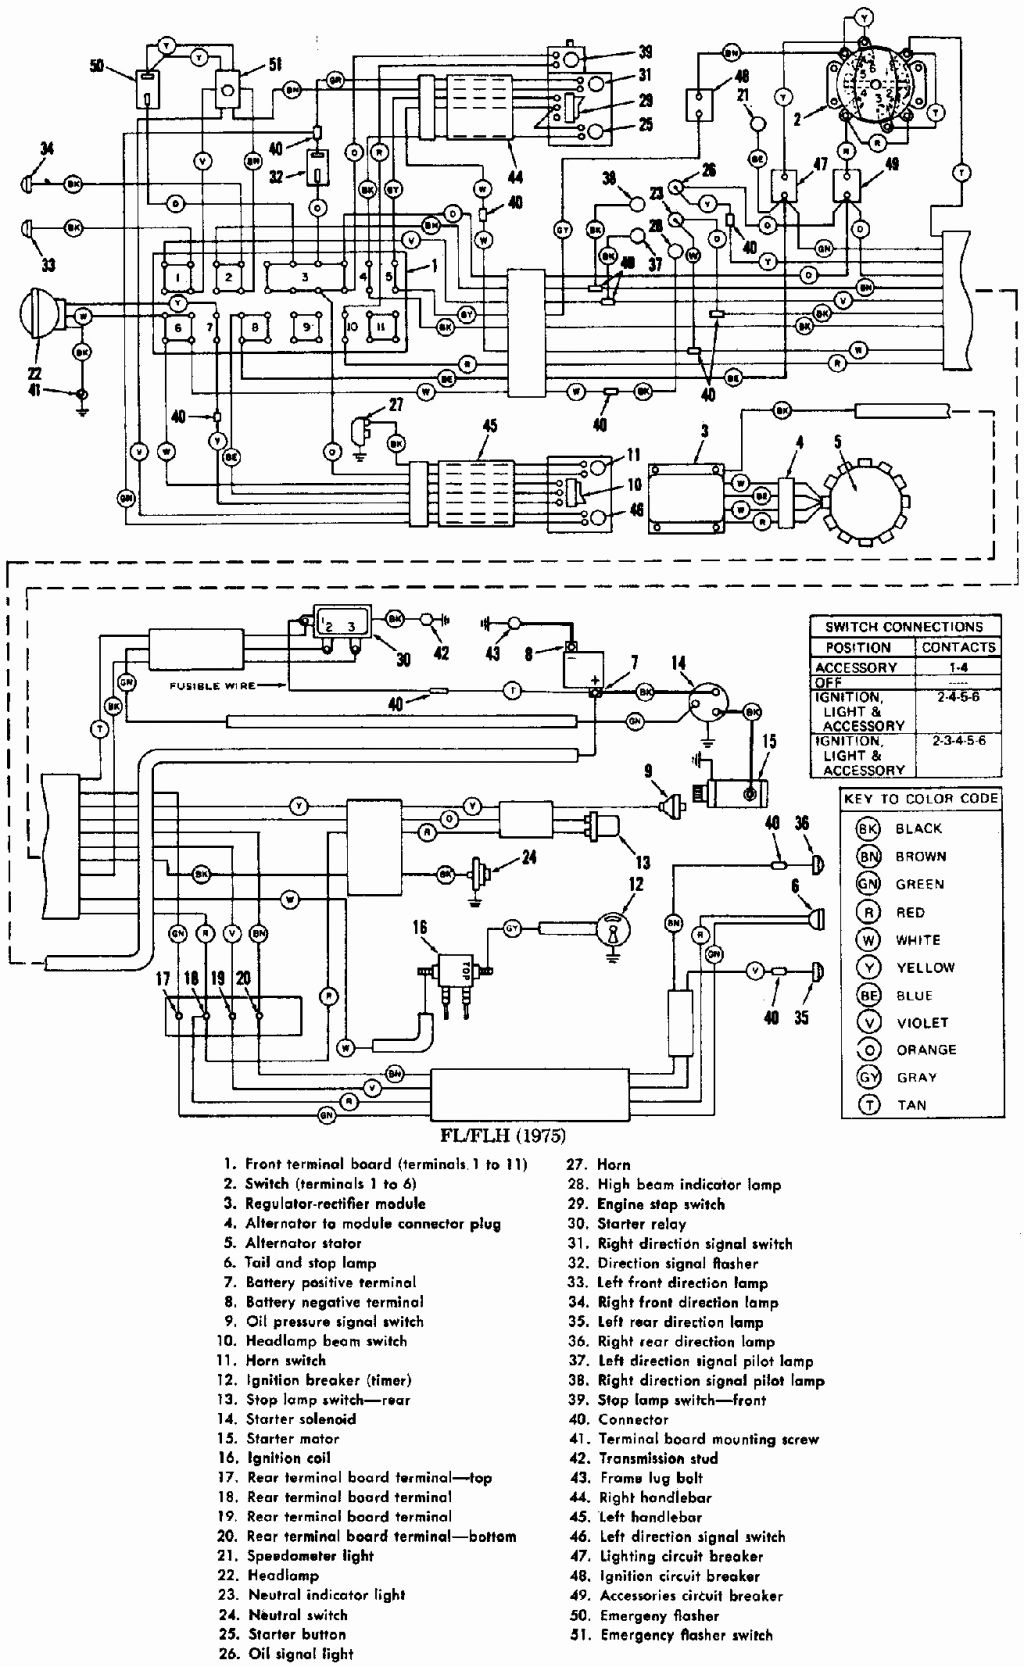 Harley Motor Electrical Diagram